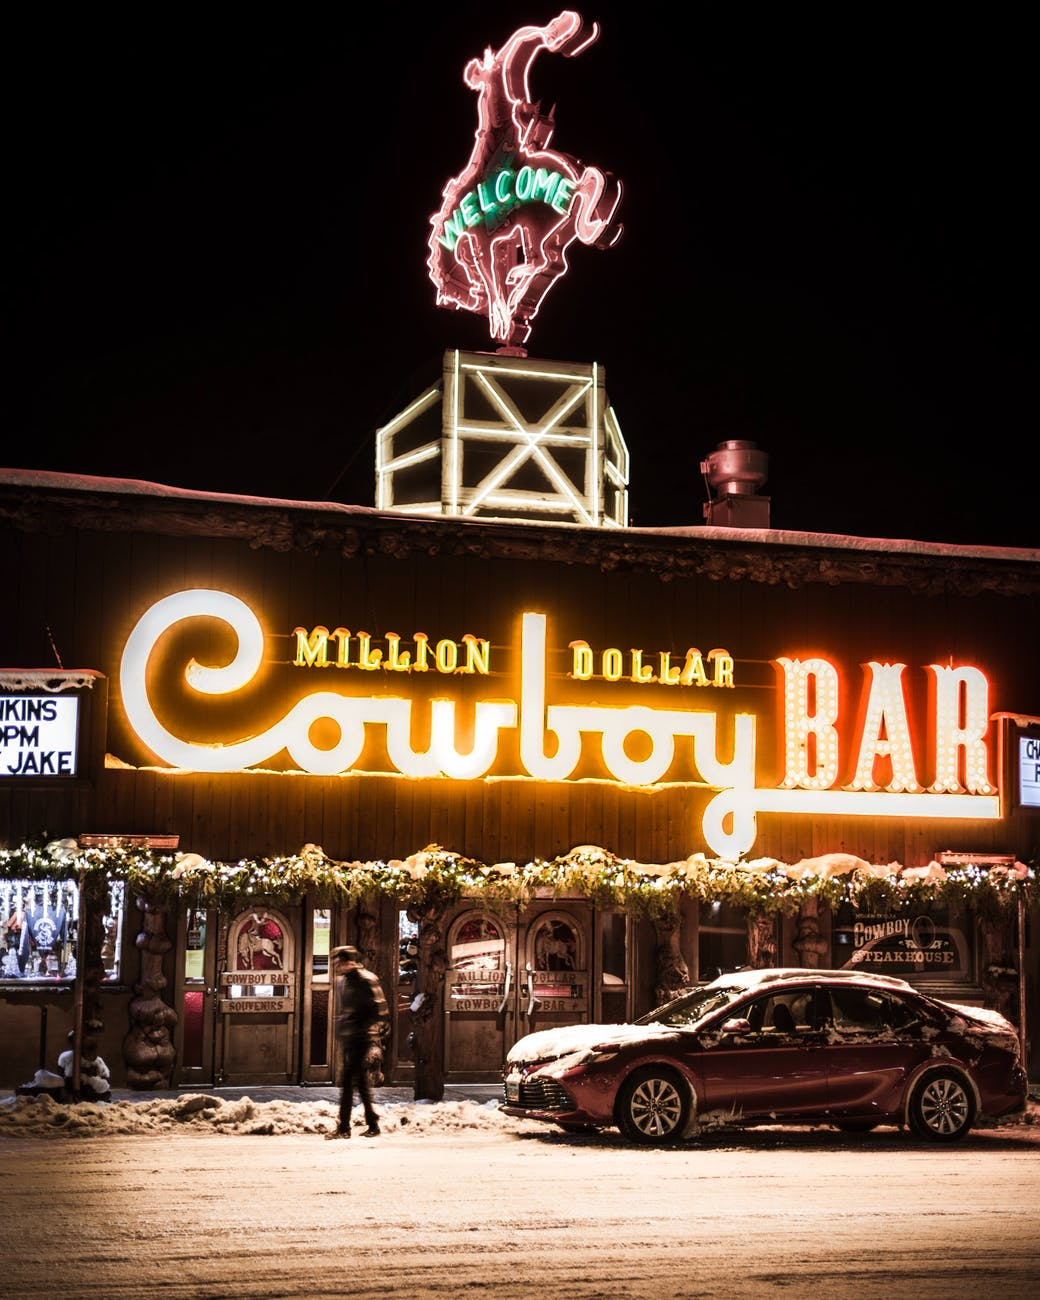 photo of cowboy bar signage